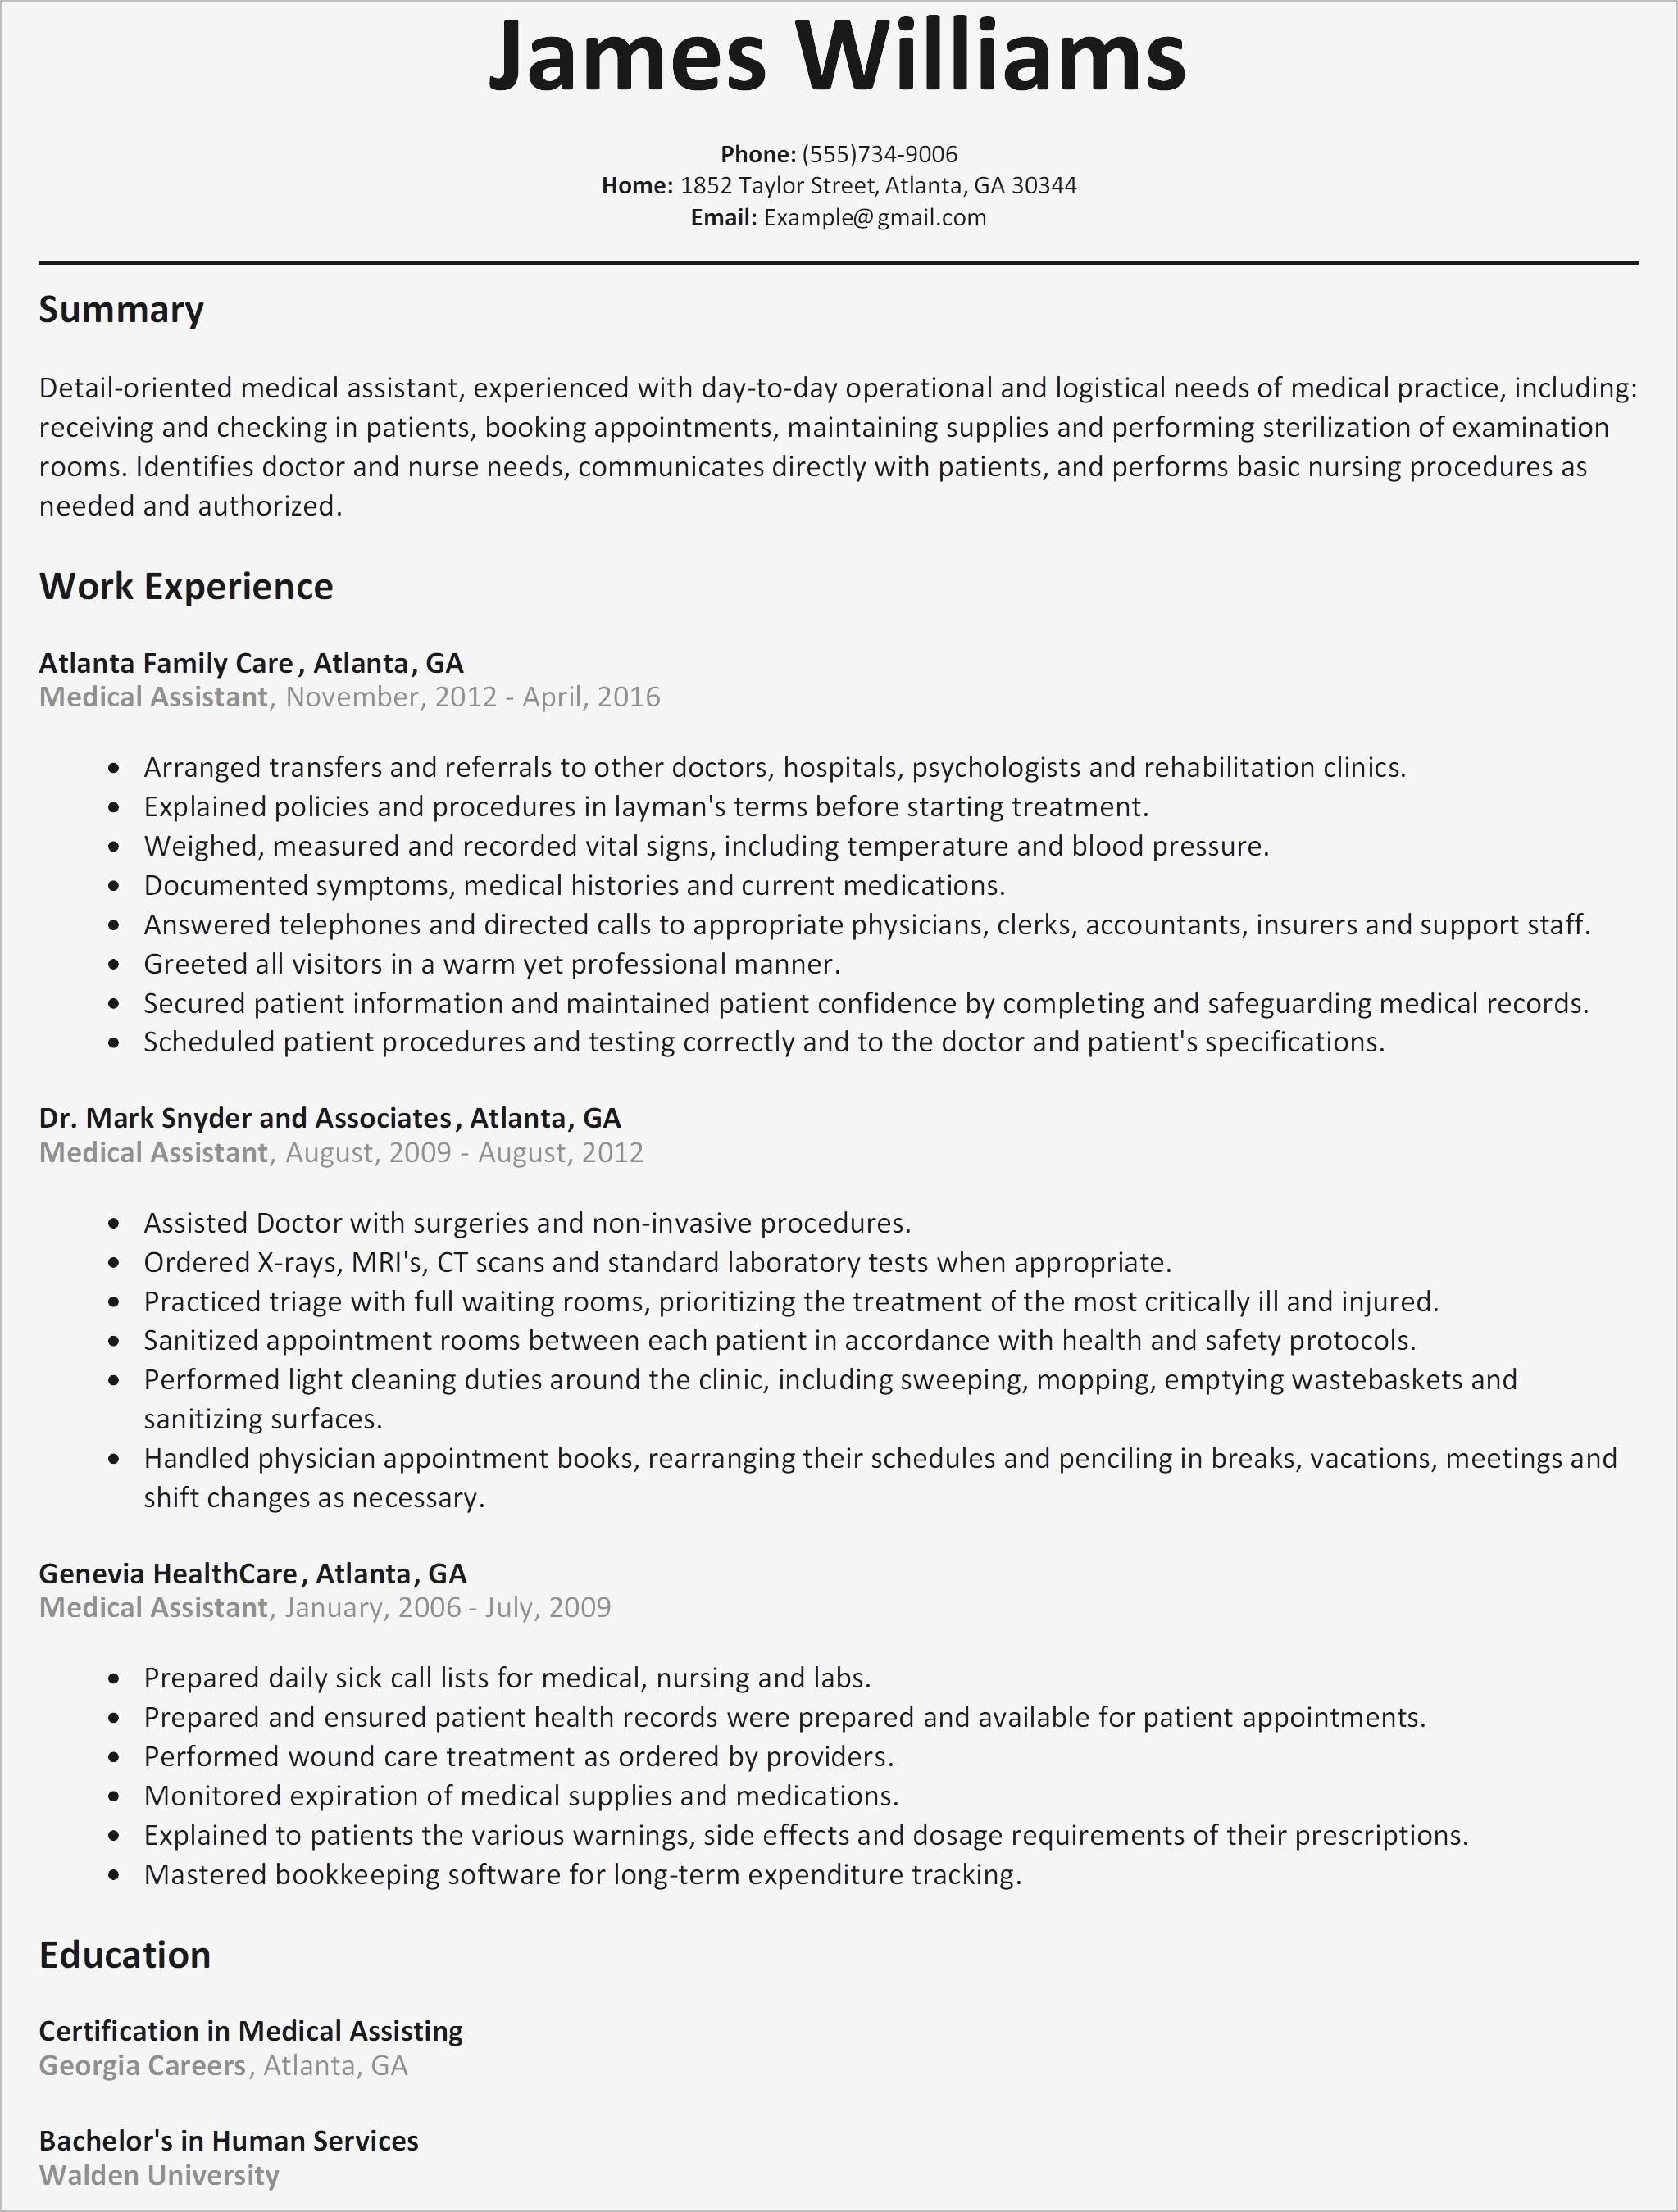 Writers Resume Template - Music Resume Template Unique Template for Resume Best College Resume